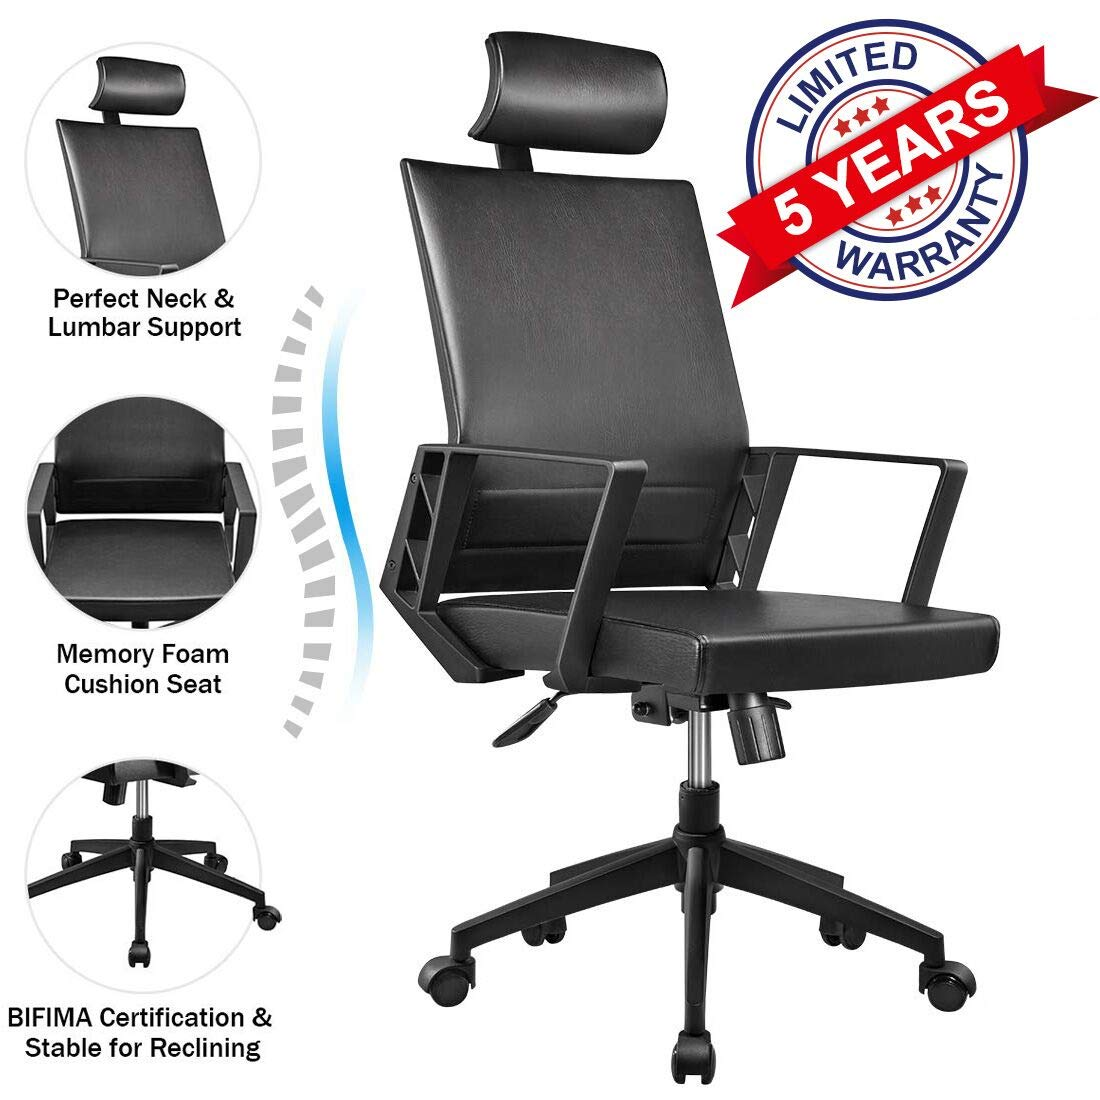 Leather Computer Modern Desk Chair,Lumbar Support Tilt Control High Back Chairs, 360°Swivel Ergonomic Work/study Executive Chair for Office Home with Fixed Arm Adjustable Headrest